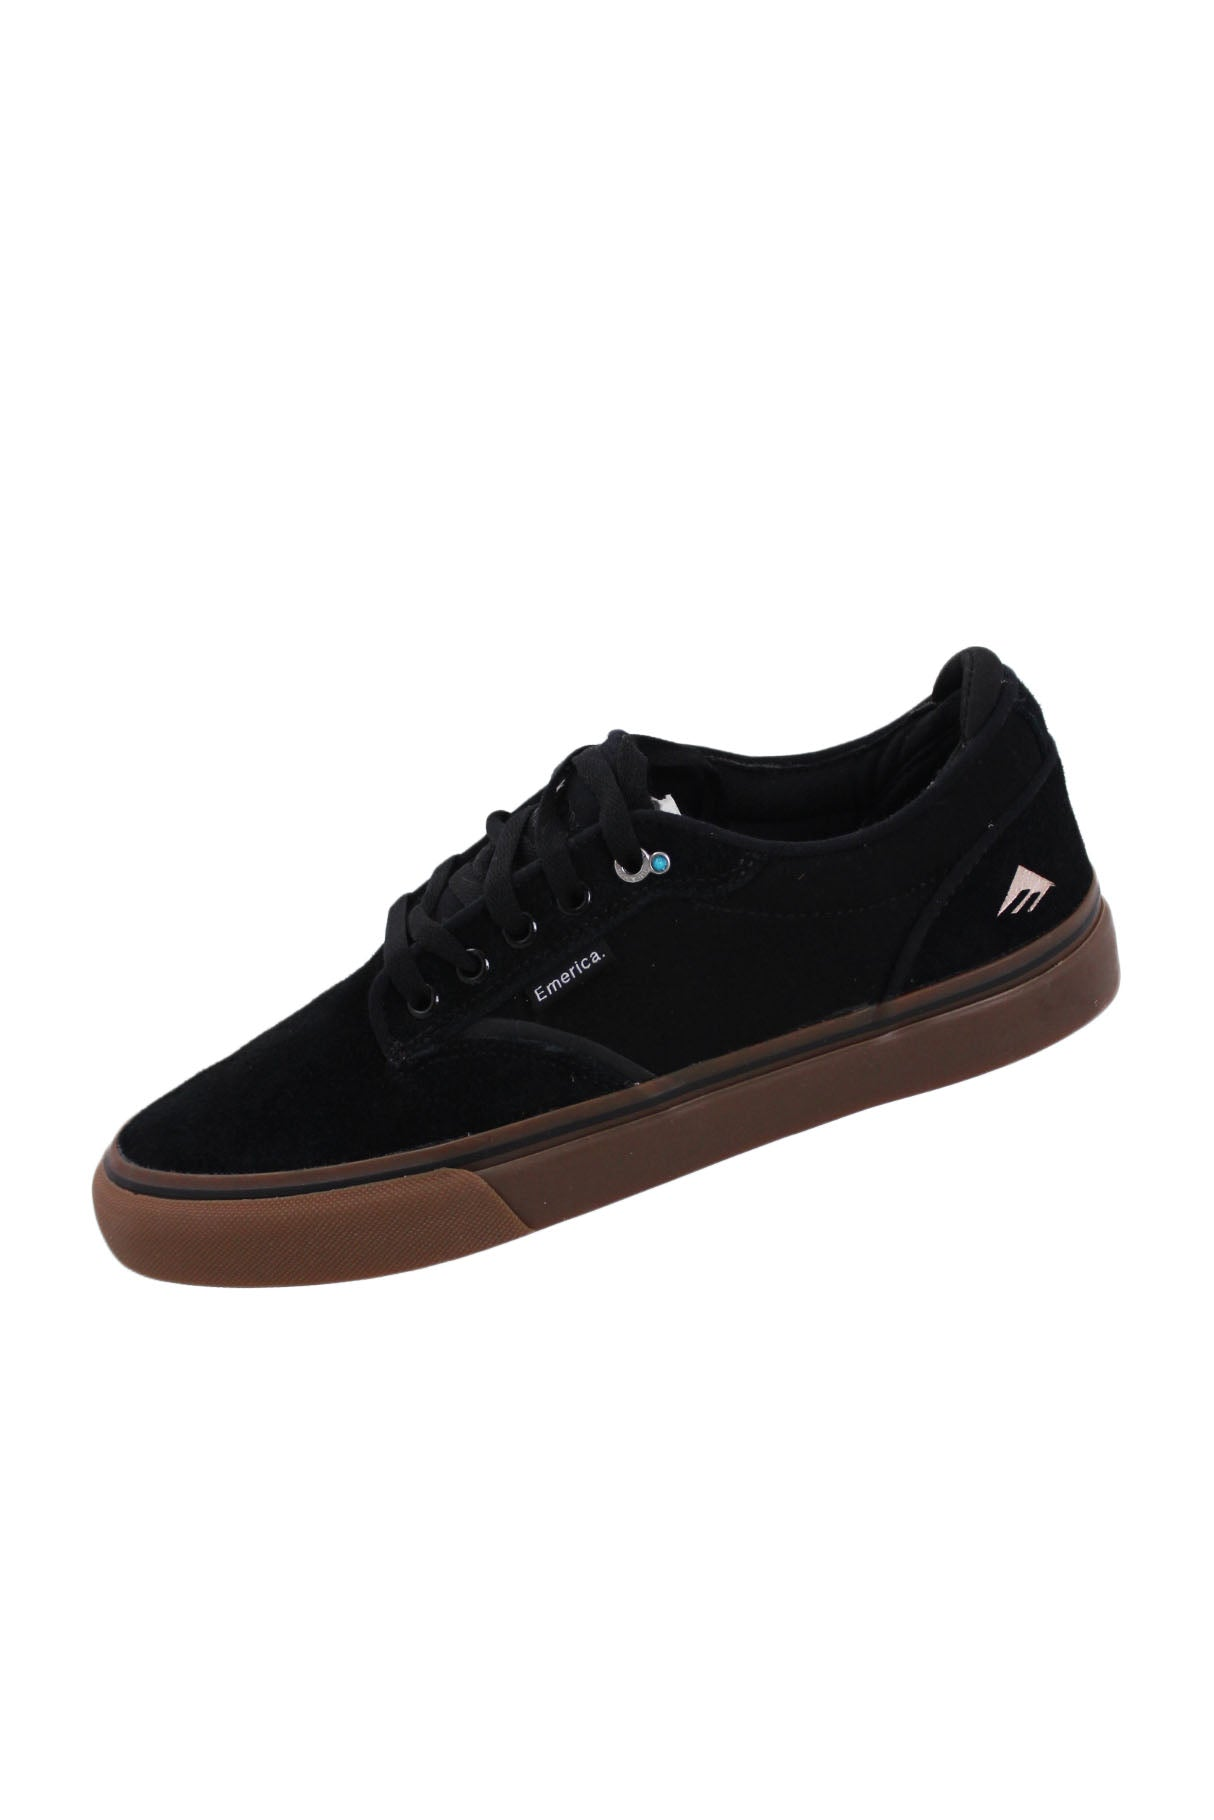 emerica black low top sneakers. features a suede upper and a subtle turquoise bead on the side of each shoe (facing outwards) by the laces.